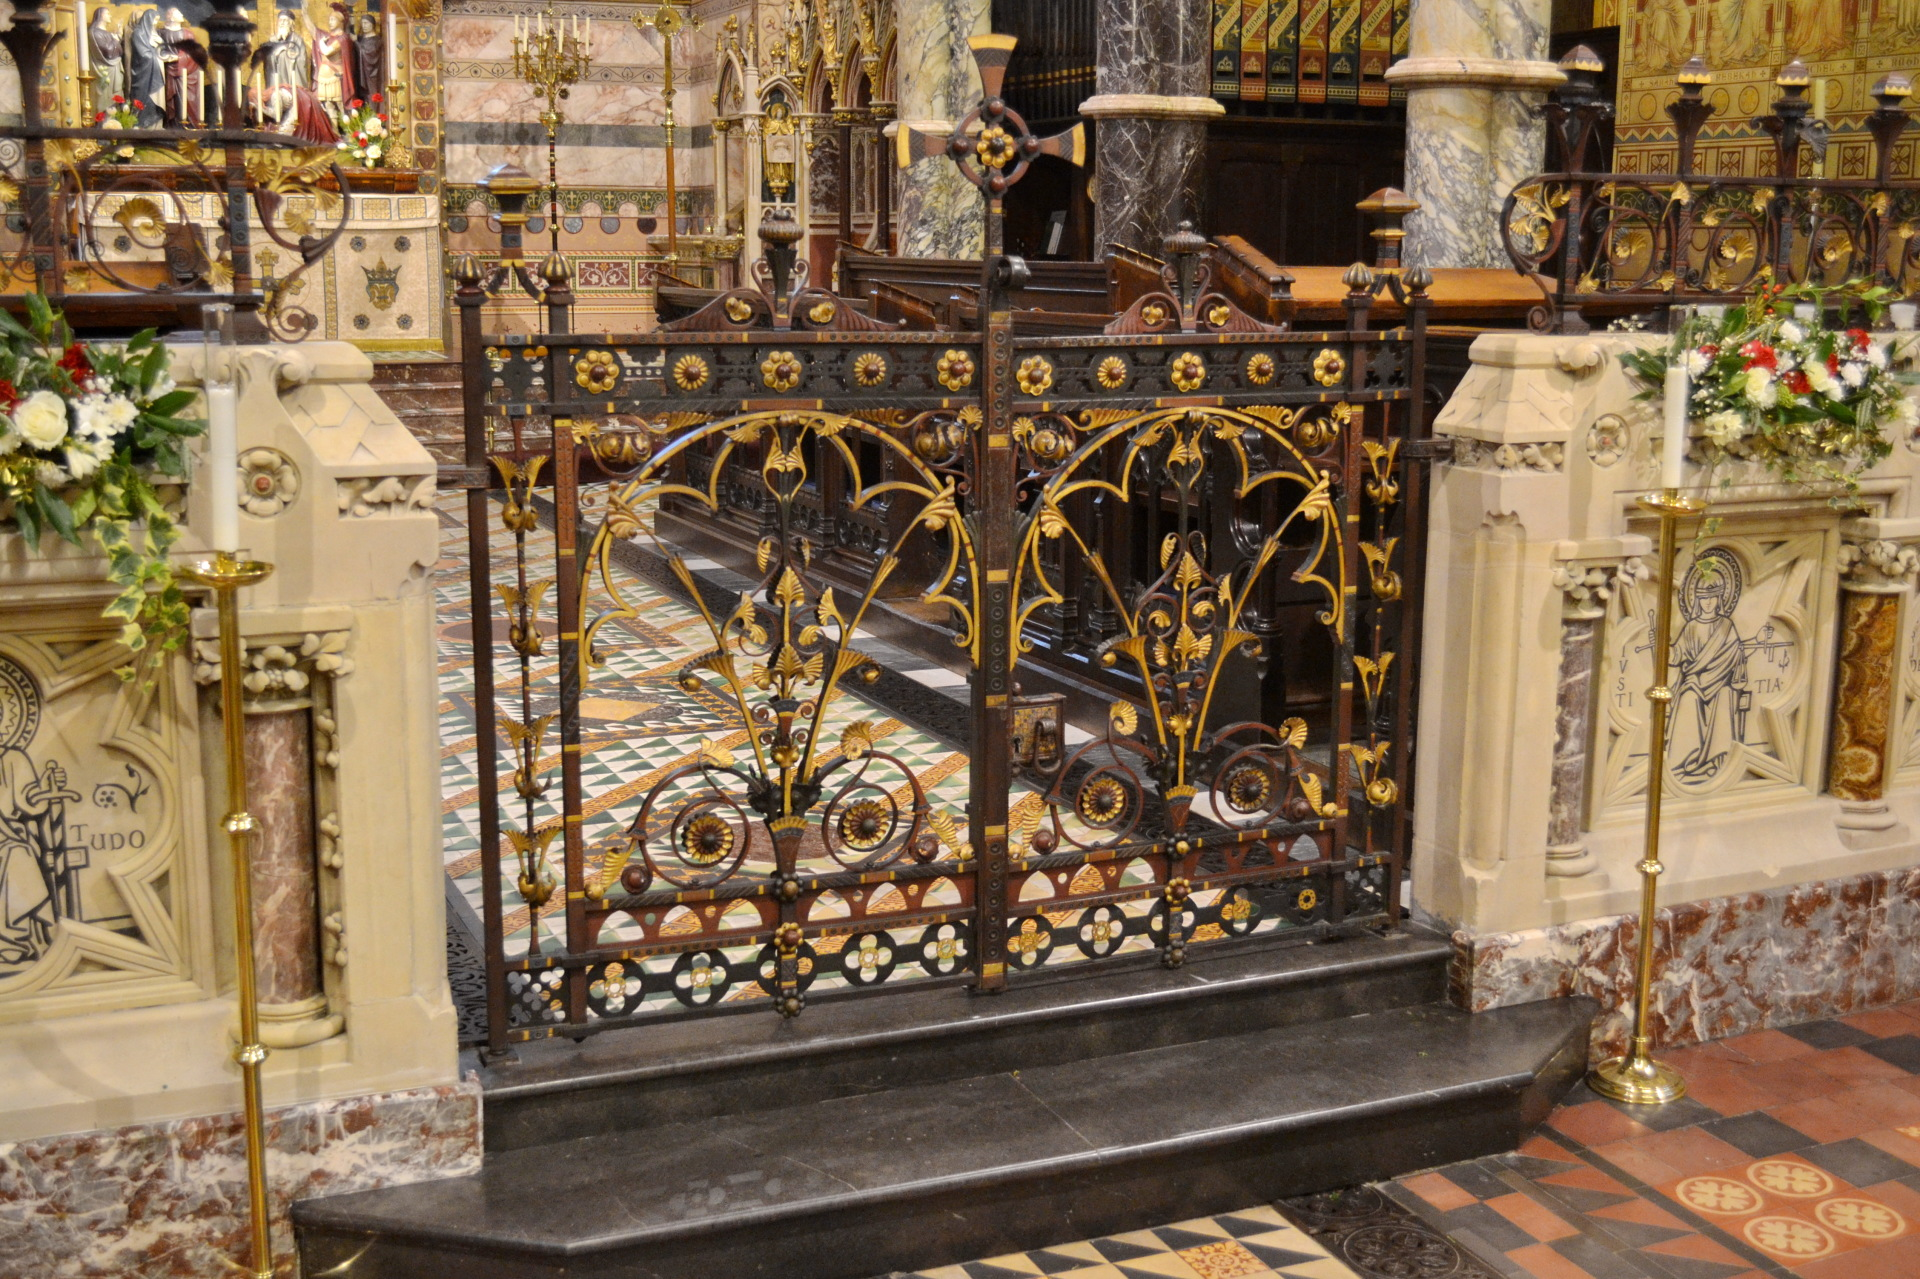 The Chancel Gates